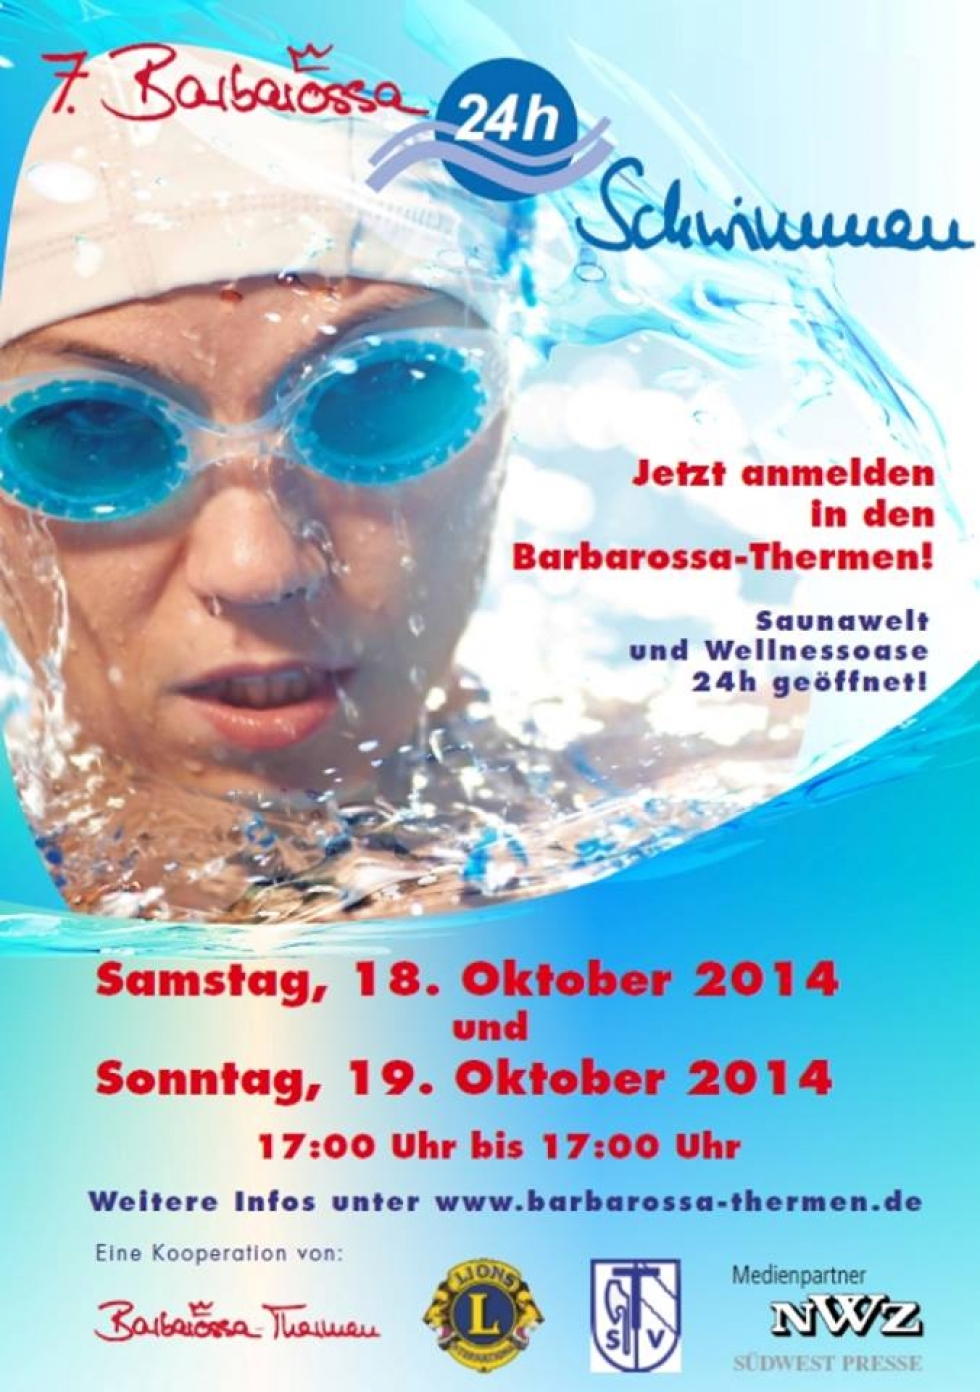 7. Barbarossa-24h-Schwimmen in den Barbarossa Thermen